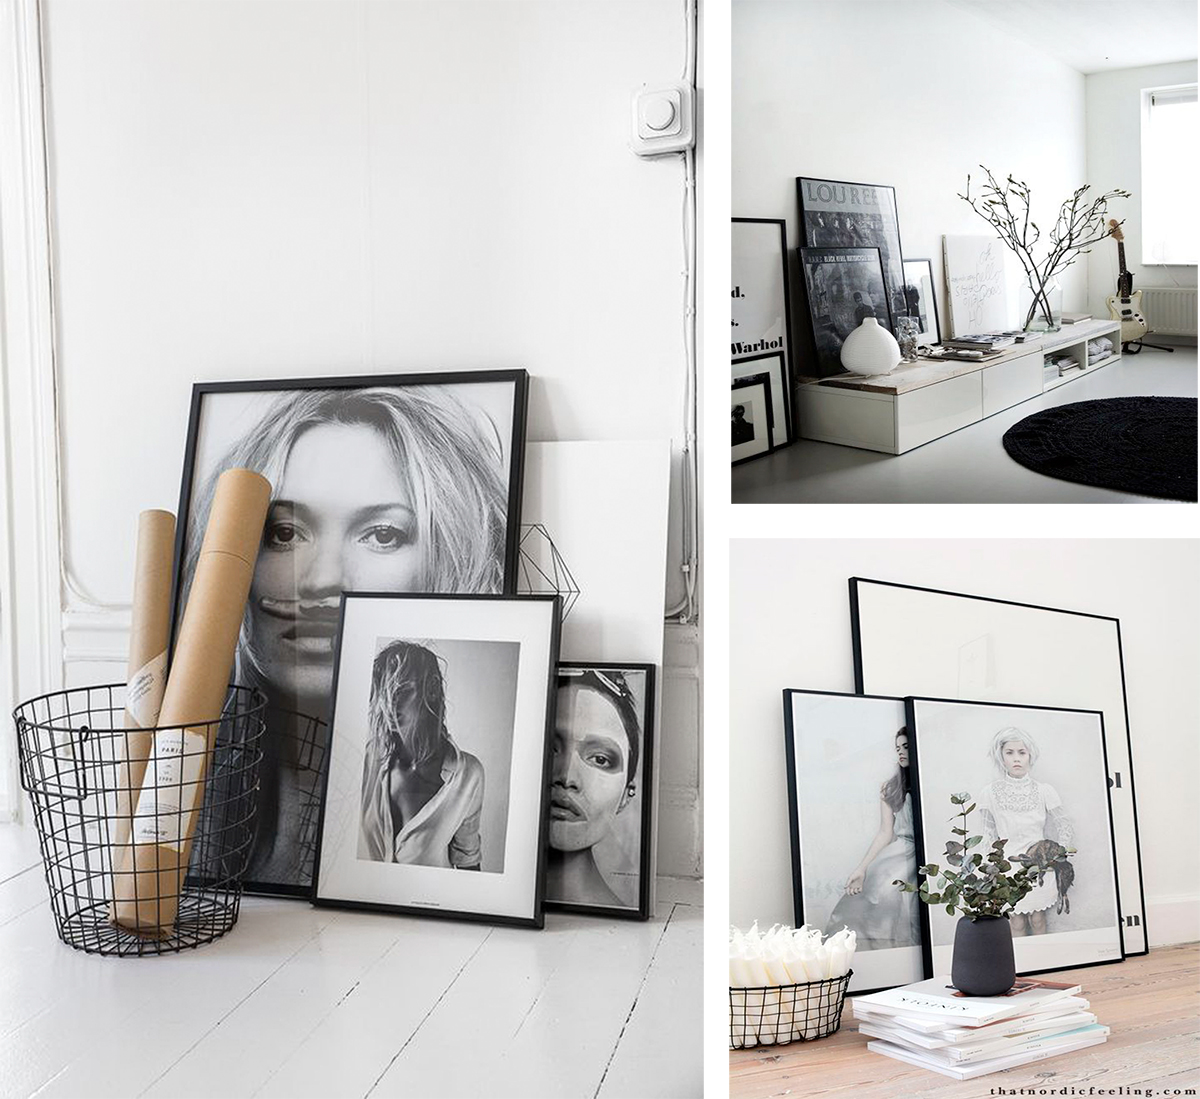 Decorar Rincones 5 Ideas Para Crear Bonitos Rincones Low Cost Alquimia Deco